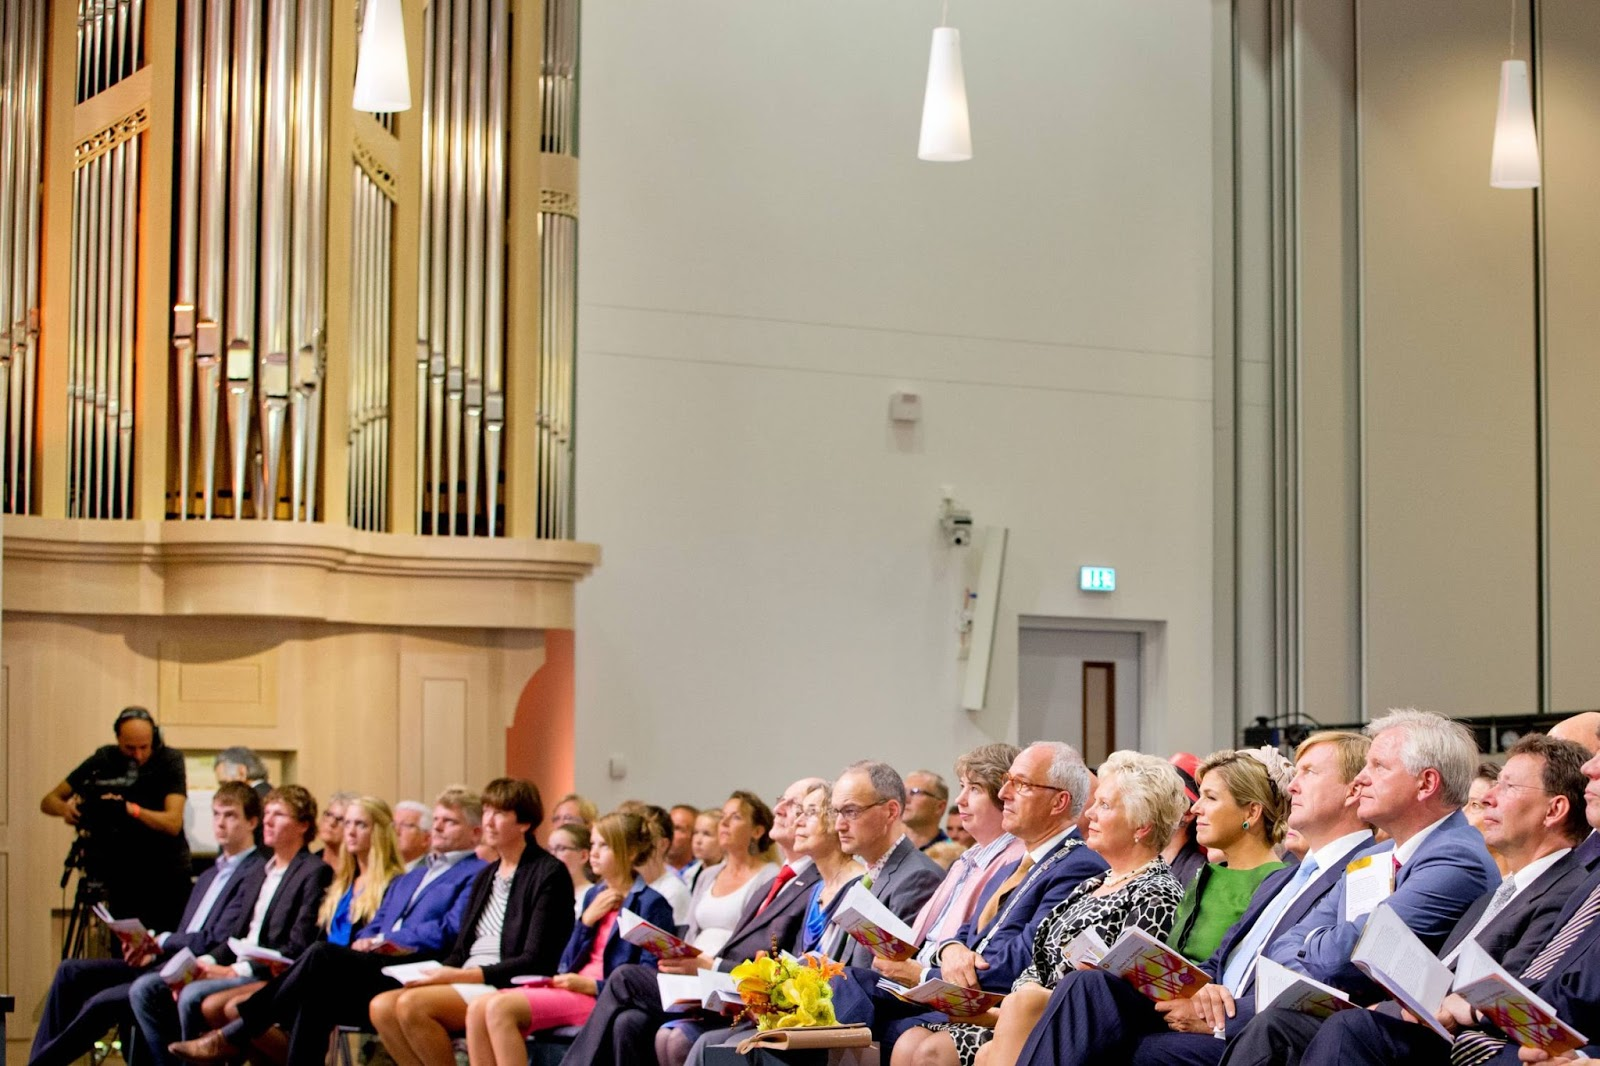 King-Willem-Alexander-Queen-Maxima-Protestant-Church